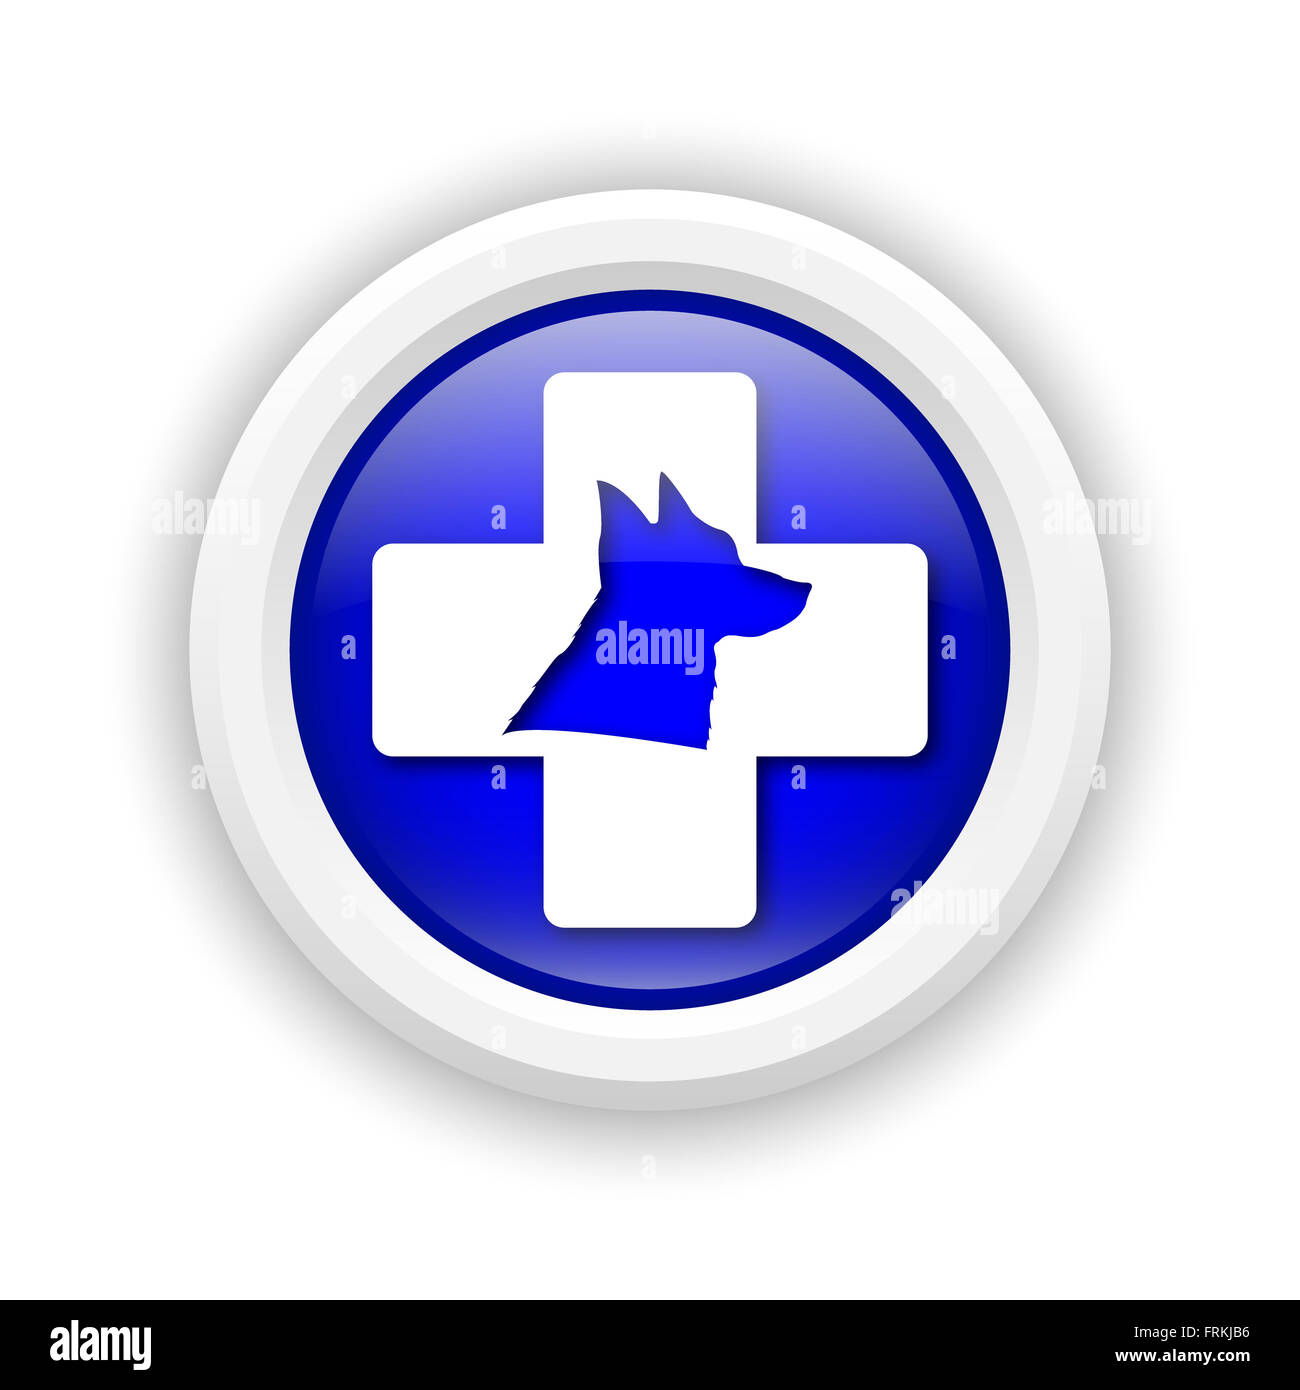 Round plastic icon with white design on blue background - Stock Image